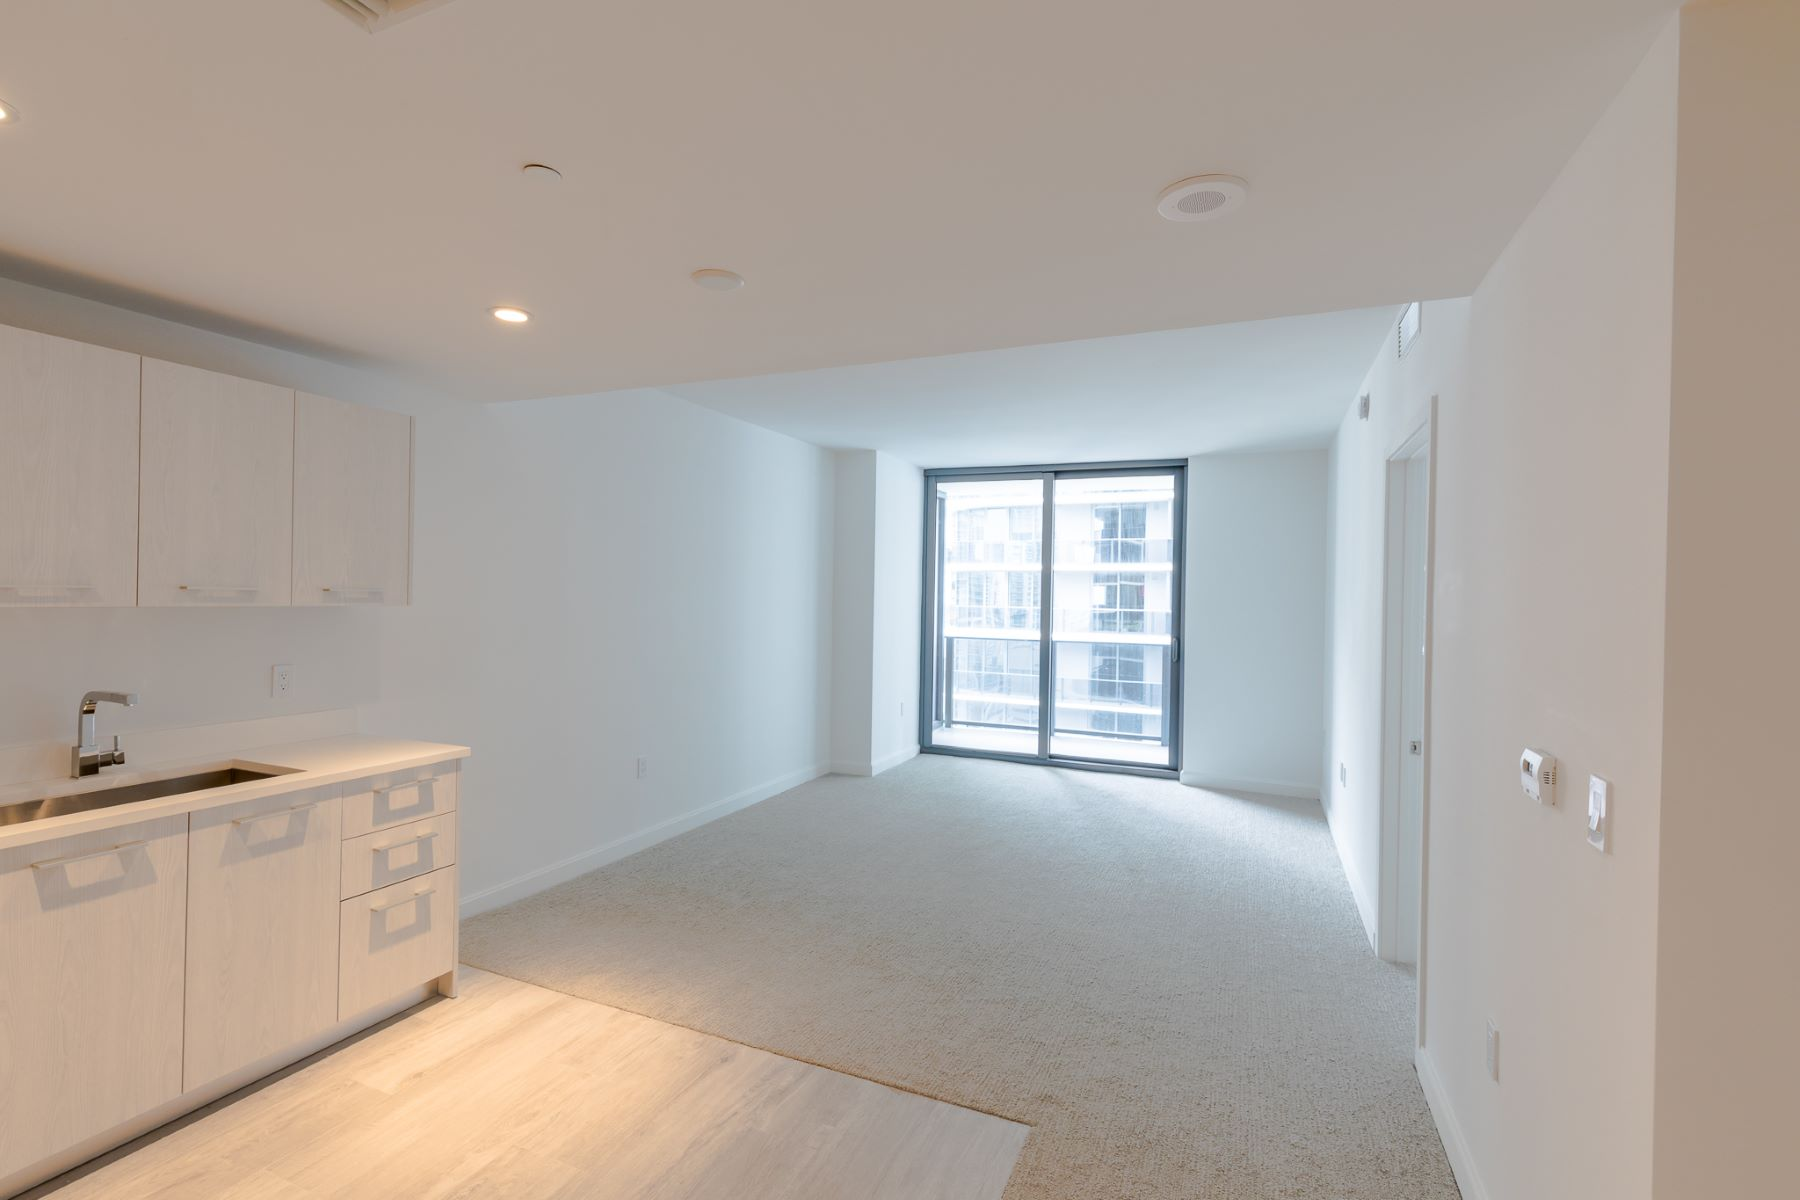 Additional photo for property listing at 45 Sw 9th Street 45 Sw 9th Street 2207 Miami, Florida 33130 United States